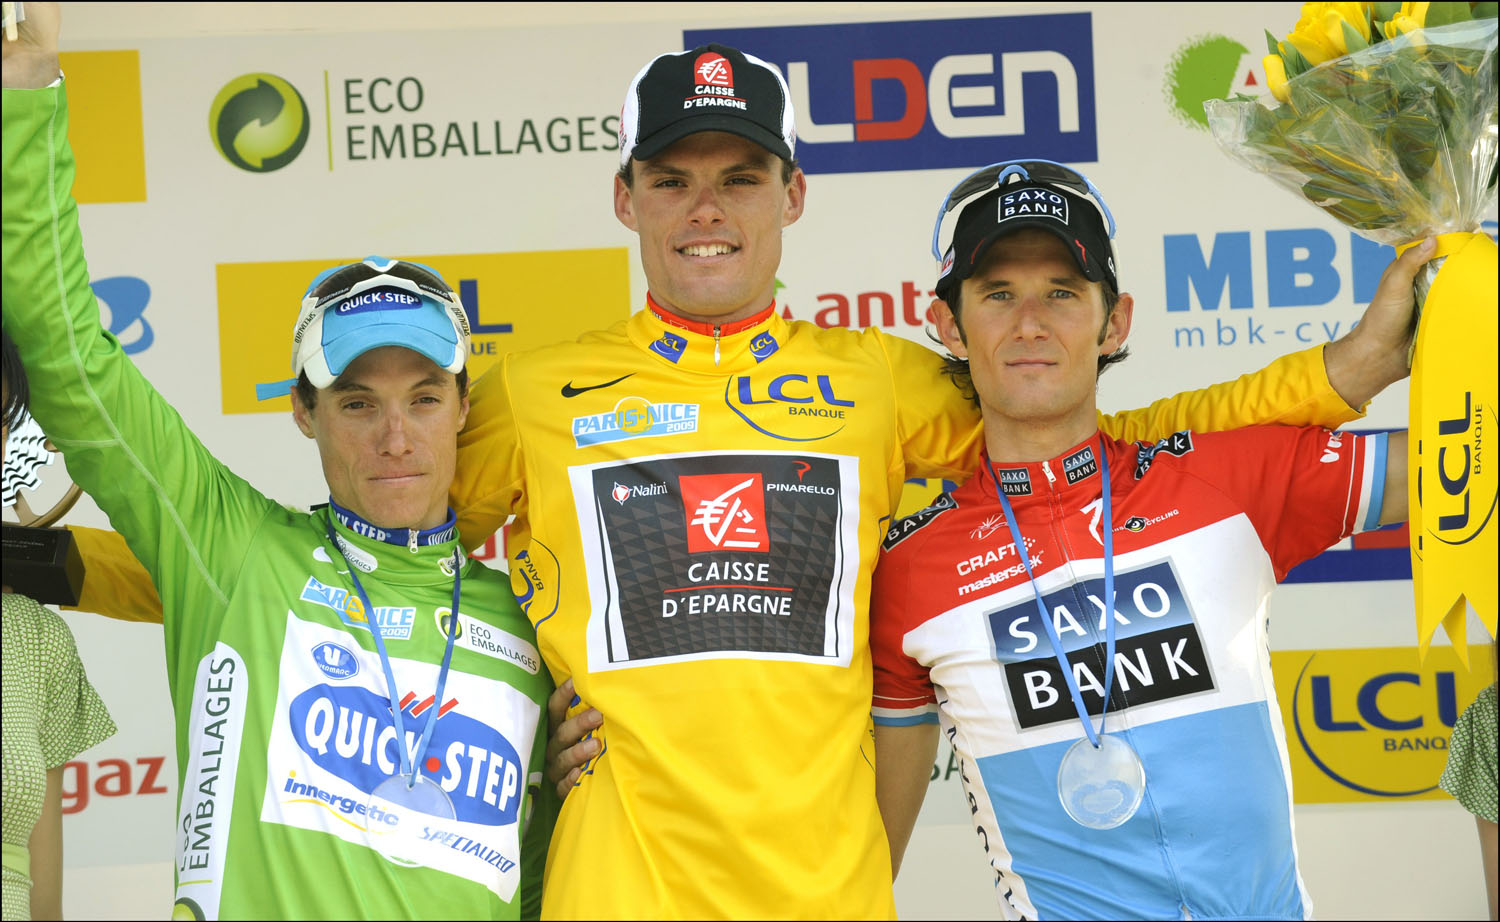 Final podium (l-r): Sylvain Chavanel (third), Luis Leon Sanchez (winner), Frank Schleck (second)